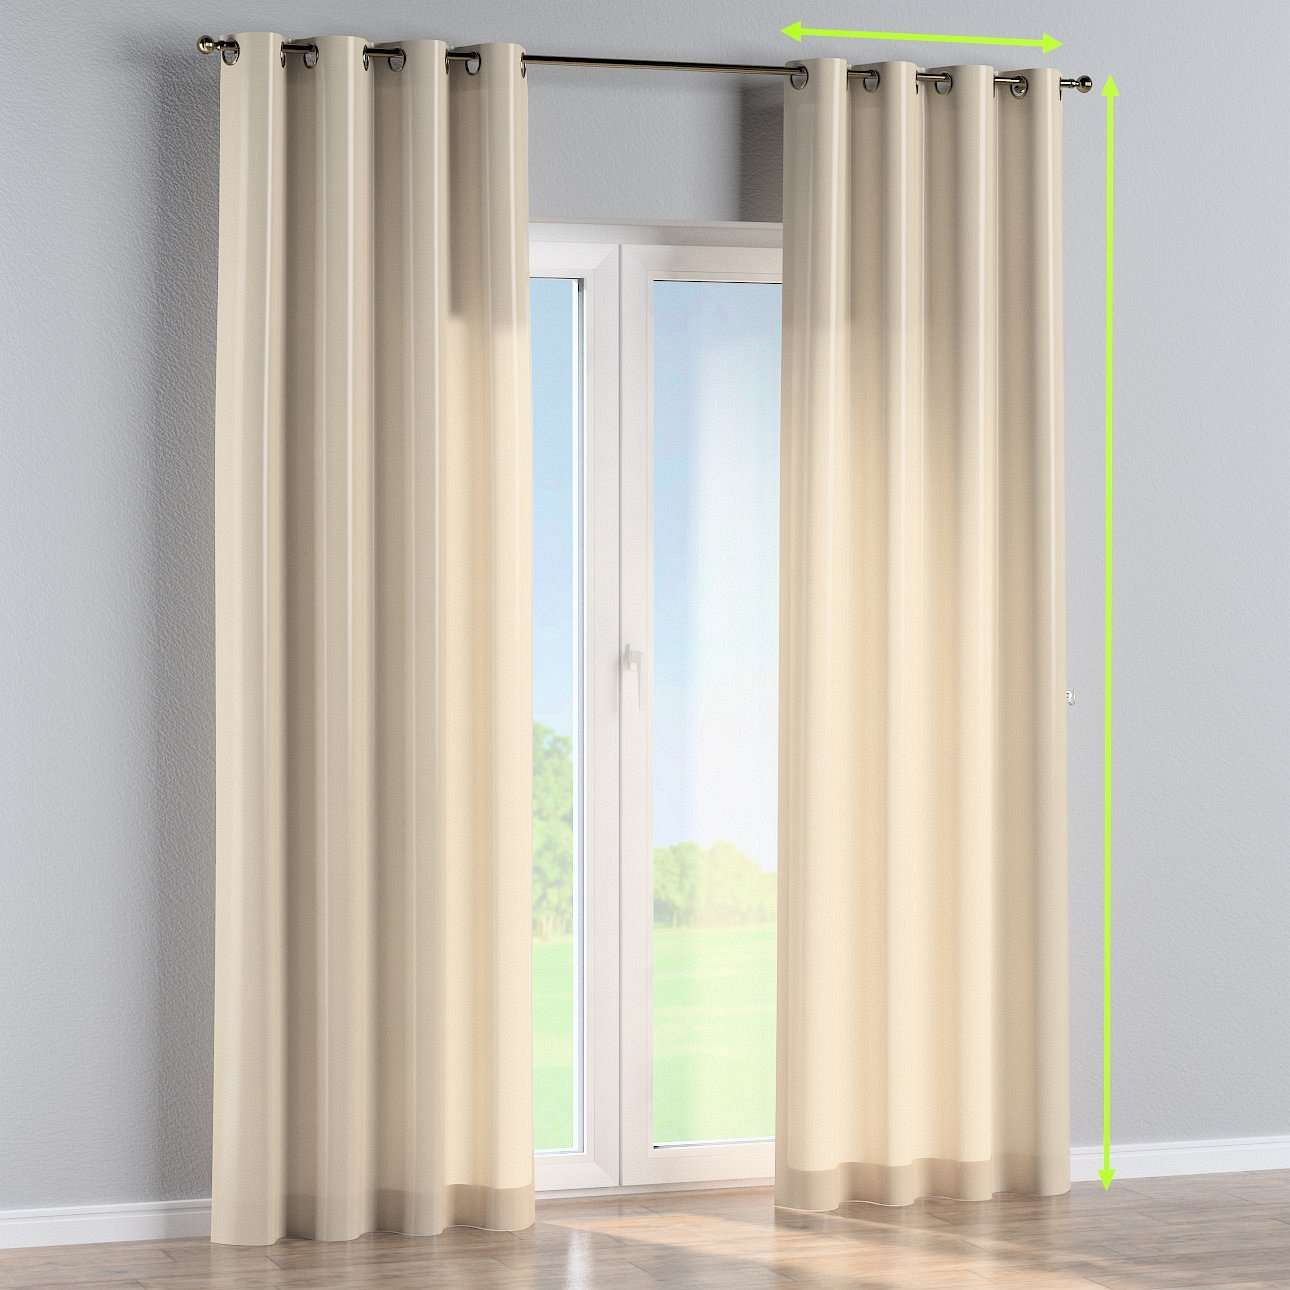 Eyelet lined curtains in collection Damasco, fabric: 141-73